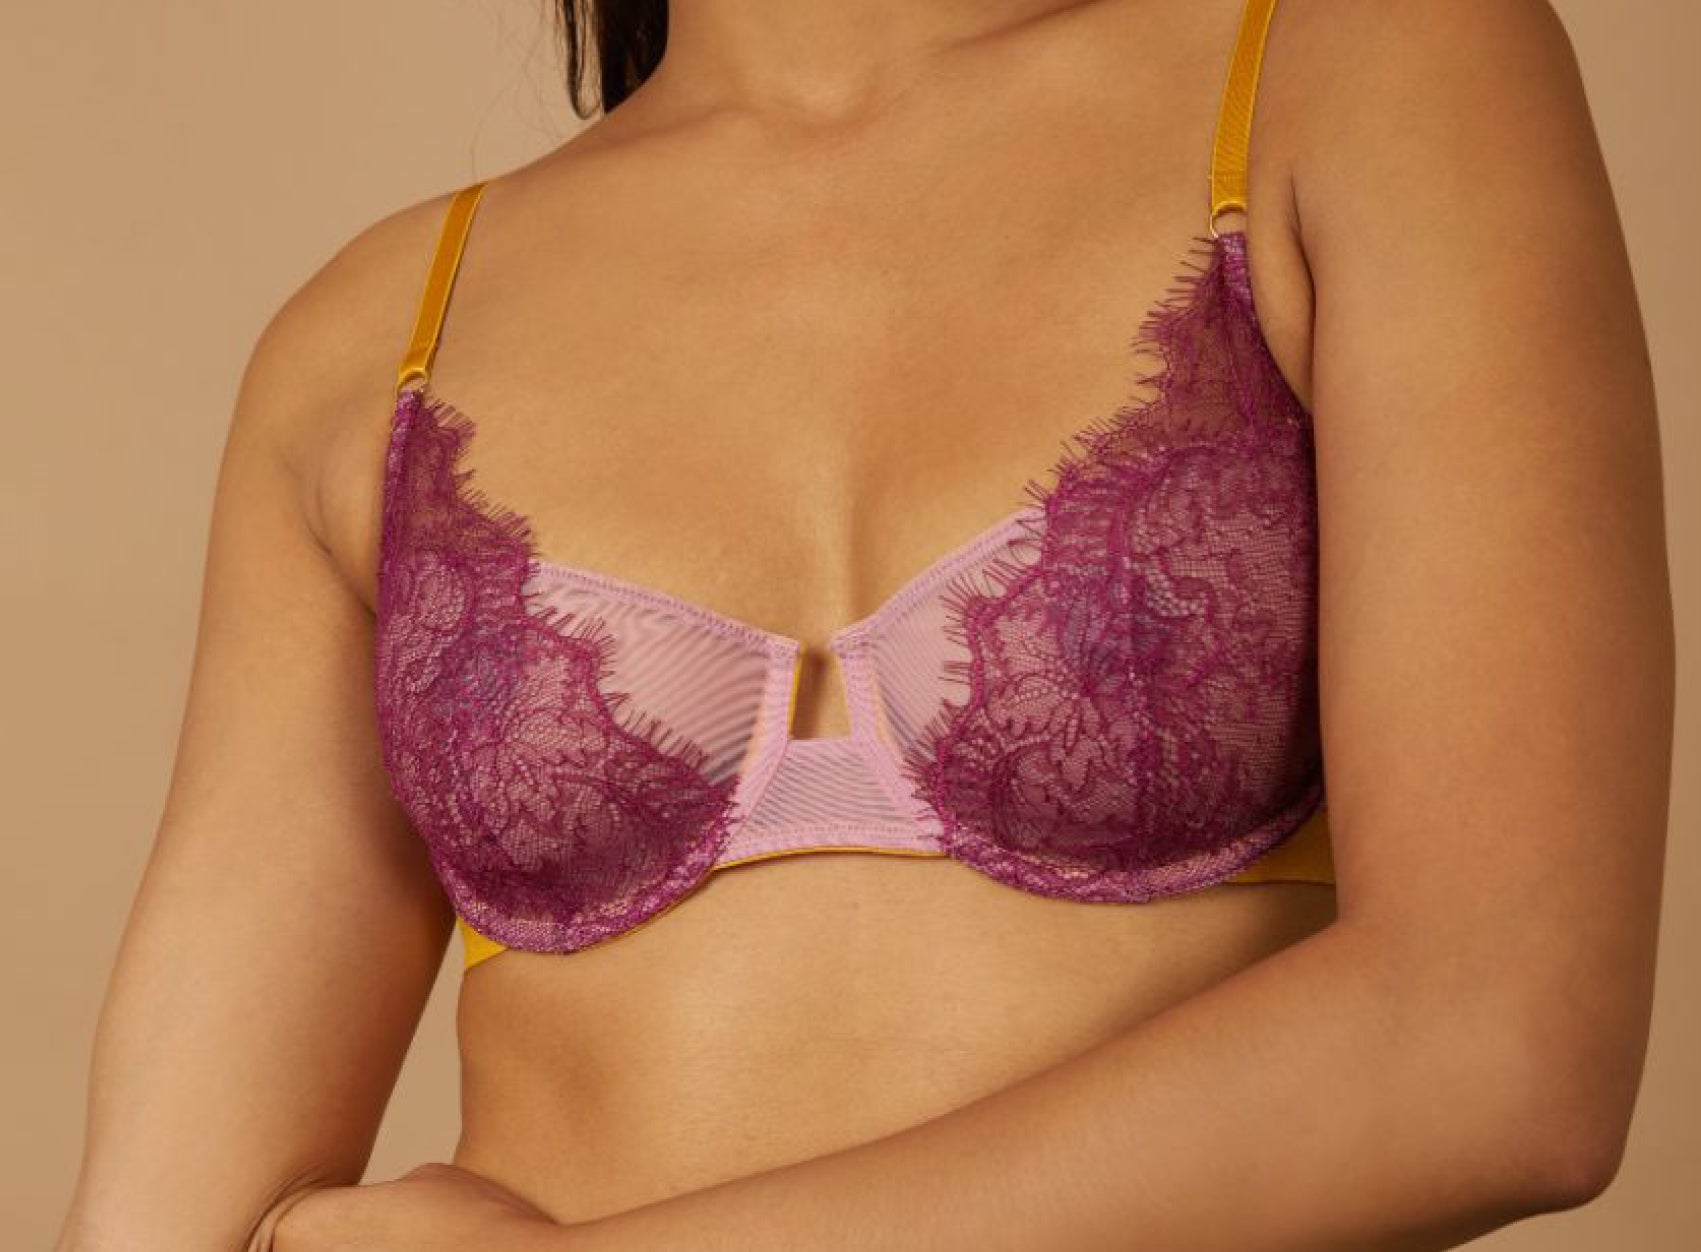 The delicate lace underwire bra. AW20 Autumn Winter 2020 Collection - Dora Larsen | Colourful Lingerie